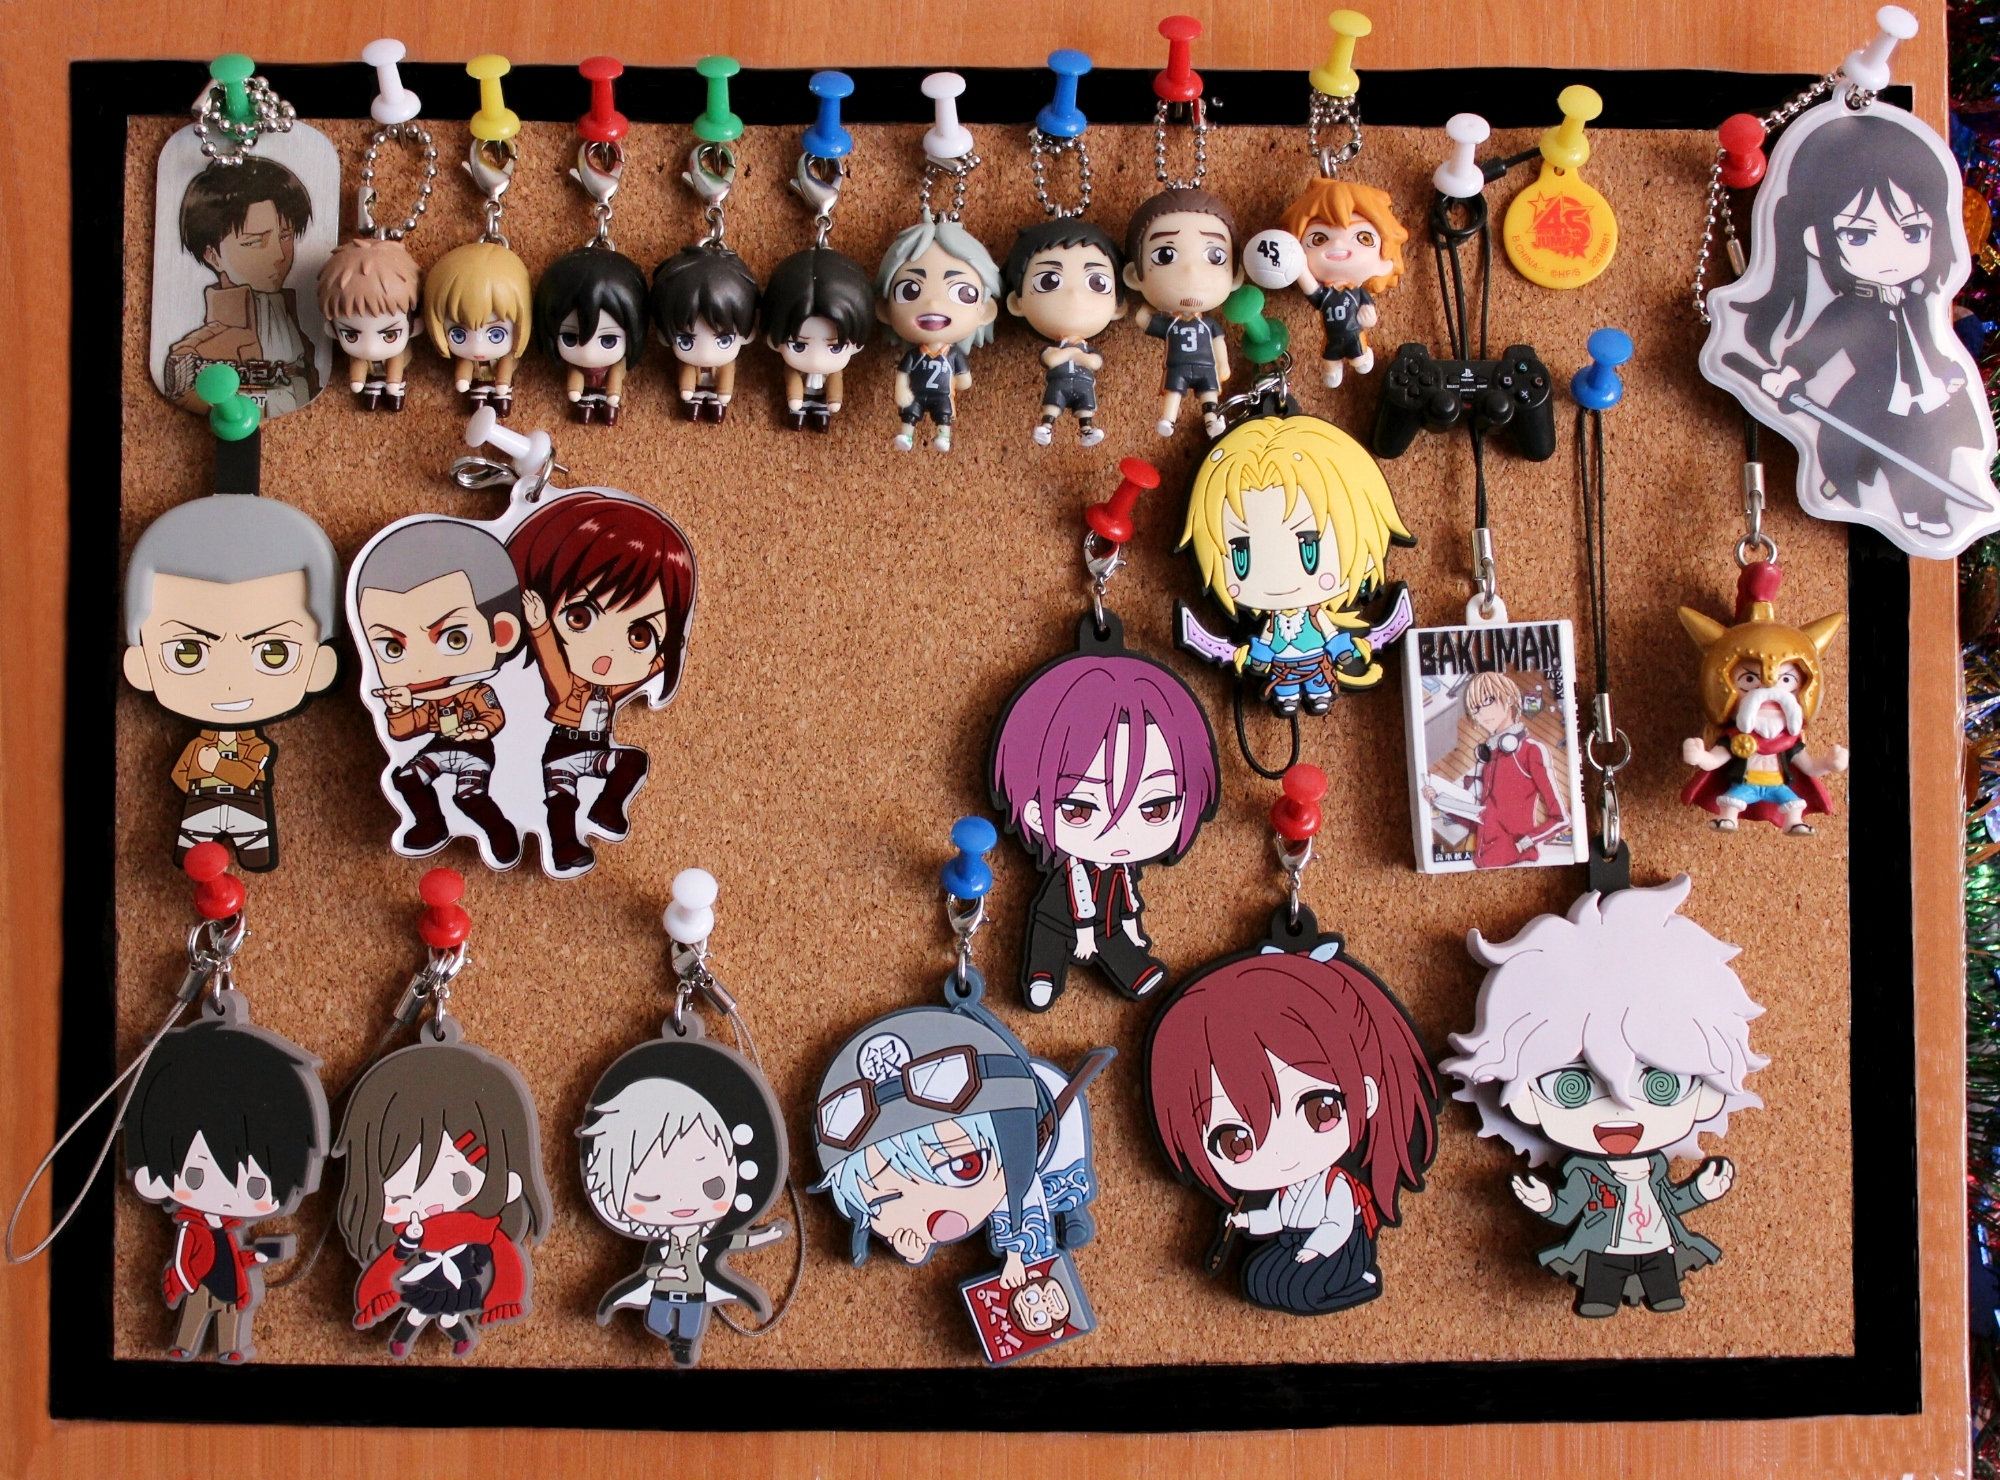 gintama kotobukiya square_enix strap petanko good_smile_company banpresto final_fantasy_ix bandai swing cospa ichiban_kuji dog_tag sakata_gintoki jin ensky hobby_stock penguin_parade rubber_strap takara_tomy_a.r.t.s kodansha zidane_tribal kyoto_animation takagi_akito sakurai pic-lil! bakuman. reflector k deformed_mini yatogami_kurou earphone_jack_accessory komaeda_nagito spike_chunsoft haikyuu!! shingeki_no_kyojin isayama_hajime hinata_shouyou mikasa_ackerman kisaragi_shintarou kano_shuuya free! tsumamare matsuoka_rin connie_springer levi es_series_nino j-stars_45th_anniversary_swing_zenpen sasha_blouse jean_kirstein acrylic_charm ooji_kouji matsuoka_gou azumane_asahi sugawara_koushi sawamura_daichi shingeki_no_kyojin_pinched_&_linked_mascot deformed_mini_haikyuu!! petanko_free!_trading_rubber_strap_vol.3 shingeki_no_kyojin_-_metal_dog_tag_box mekaku_city_actors picktam! rubber_strap_collection_mekaku_city_actors tateyama_ayano eren_yeager armin_arlert ichiban_kuji_shingeki_no_kyojin_~_jiyuu_e_no_shingeki_~ picktam!_attack_on_titan_part.2 final_fantasy_-_trading_rubber_strap_vol.2 danganronpa_1_/_2_reload picktam!_danganronpa_1・2 jump_festa_2015 jump_festa_2014